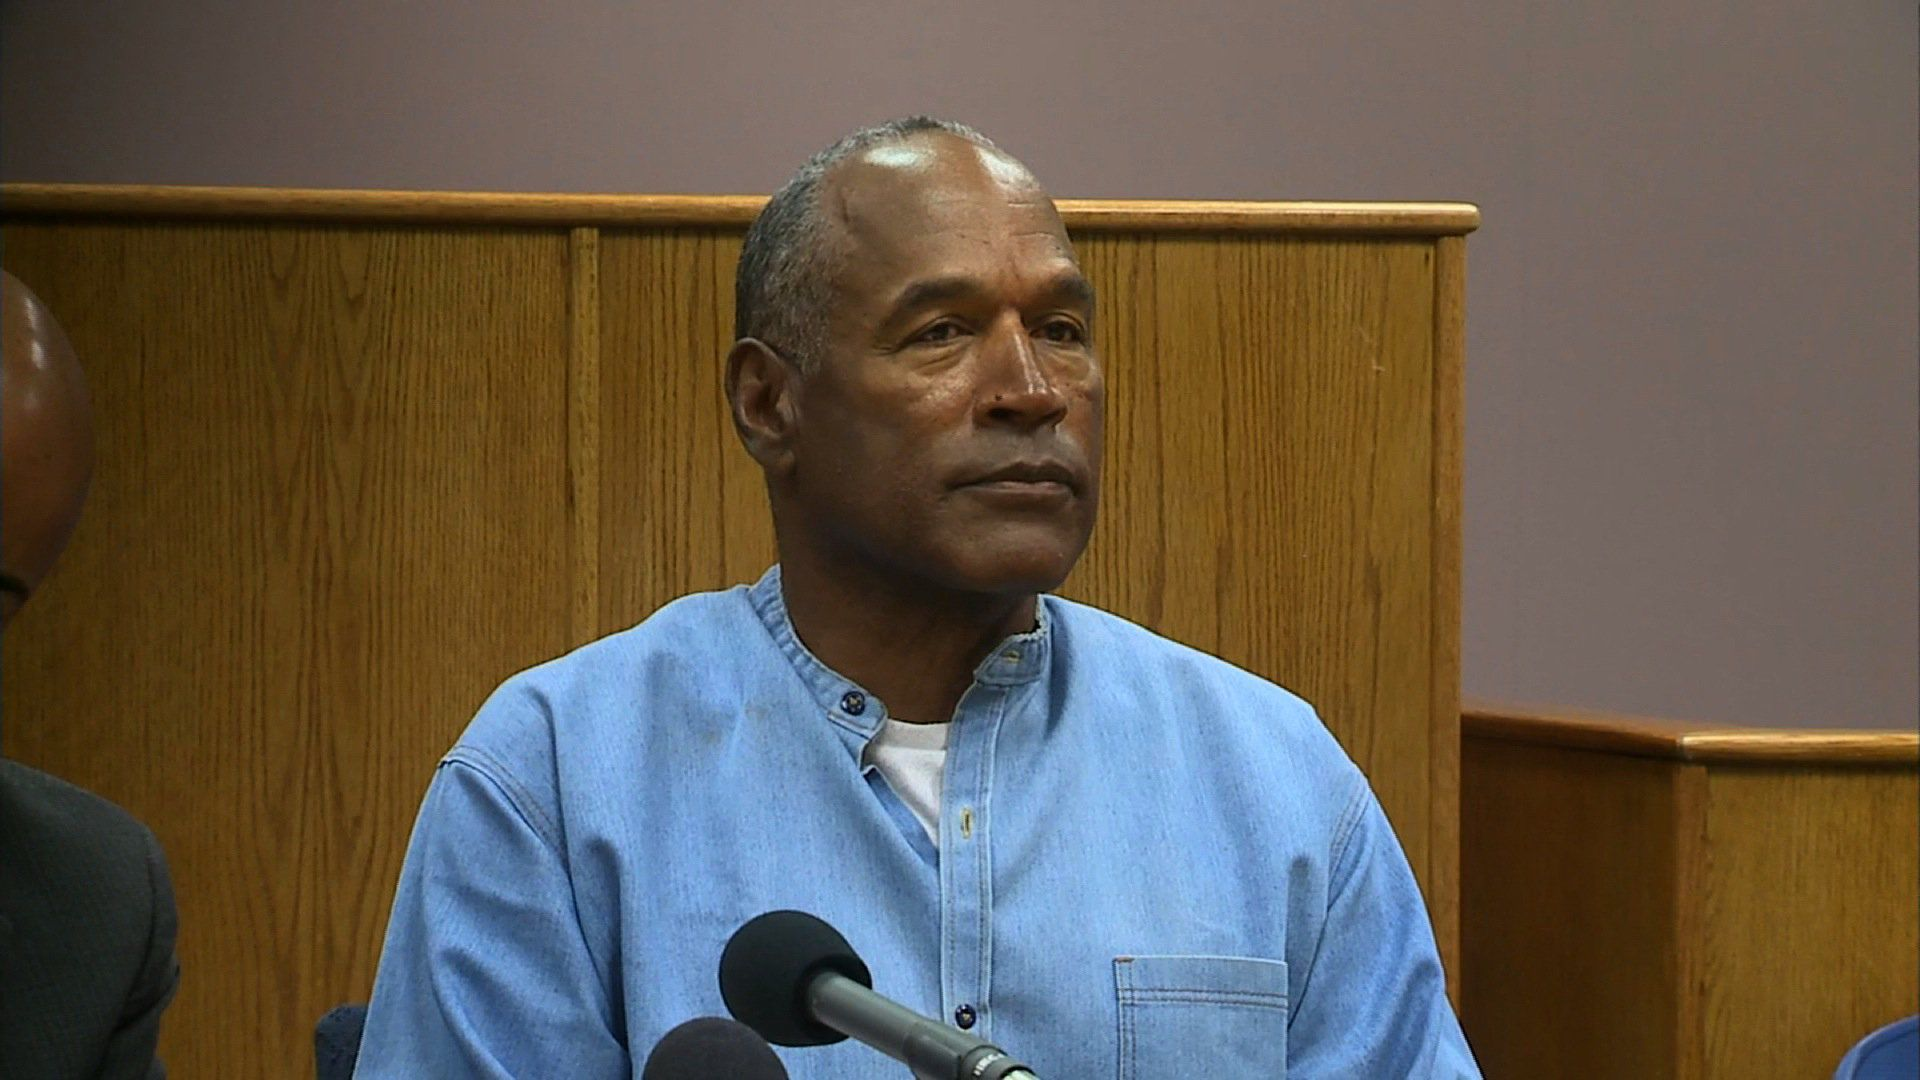 What to know for OJ Simpson's parole hearing